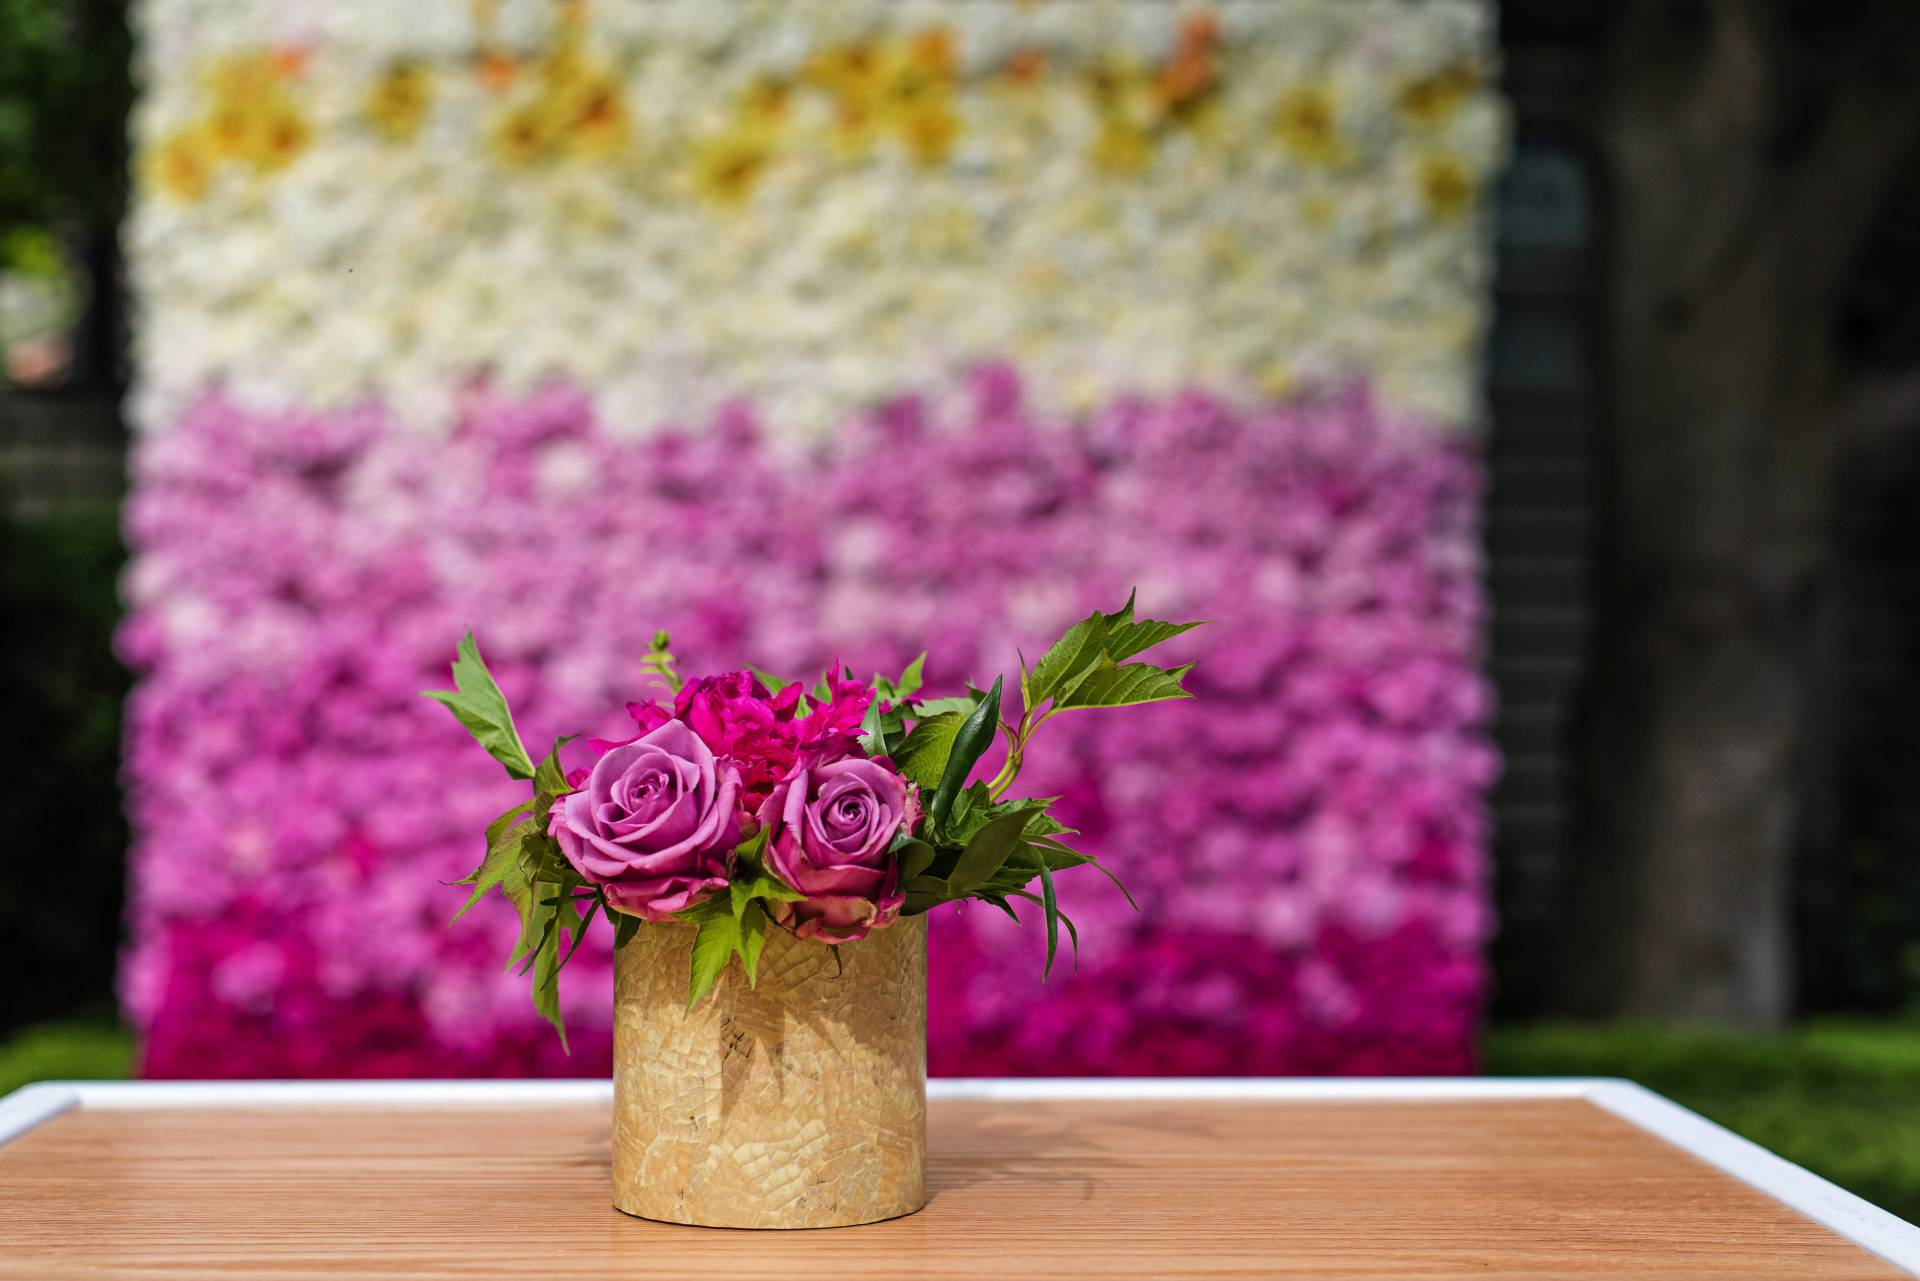 floral arrangement set on cruiser table with a multi-coloured flower wall faded in the background